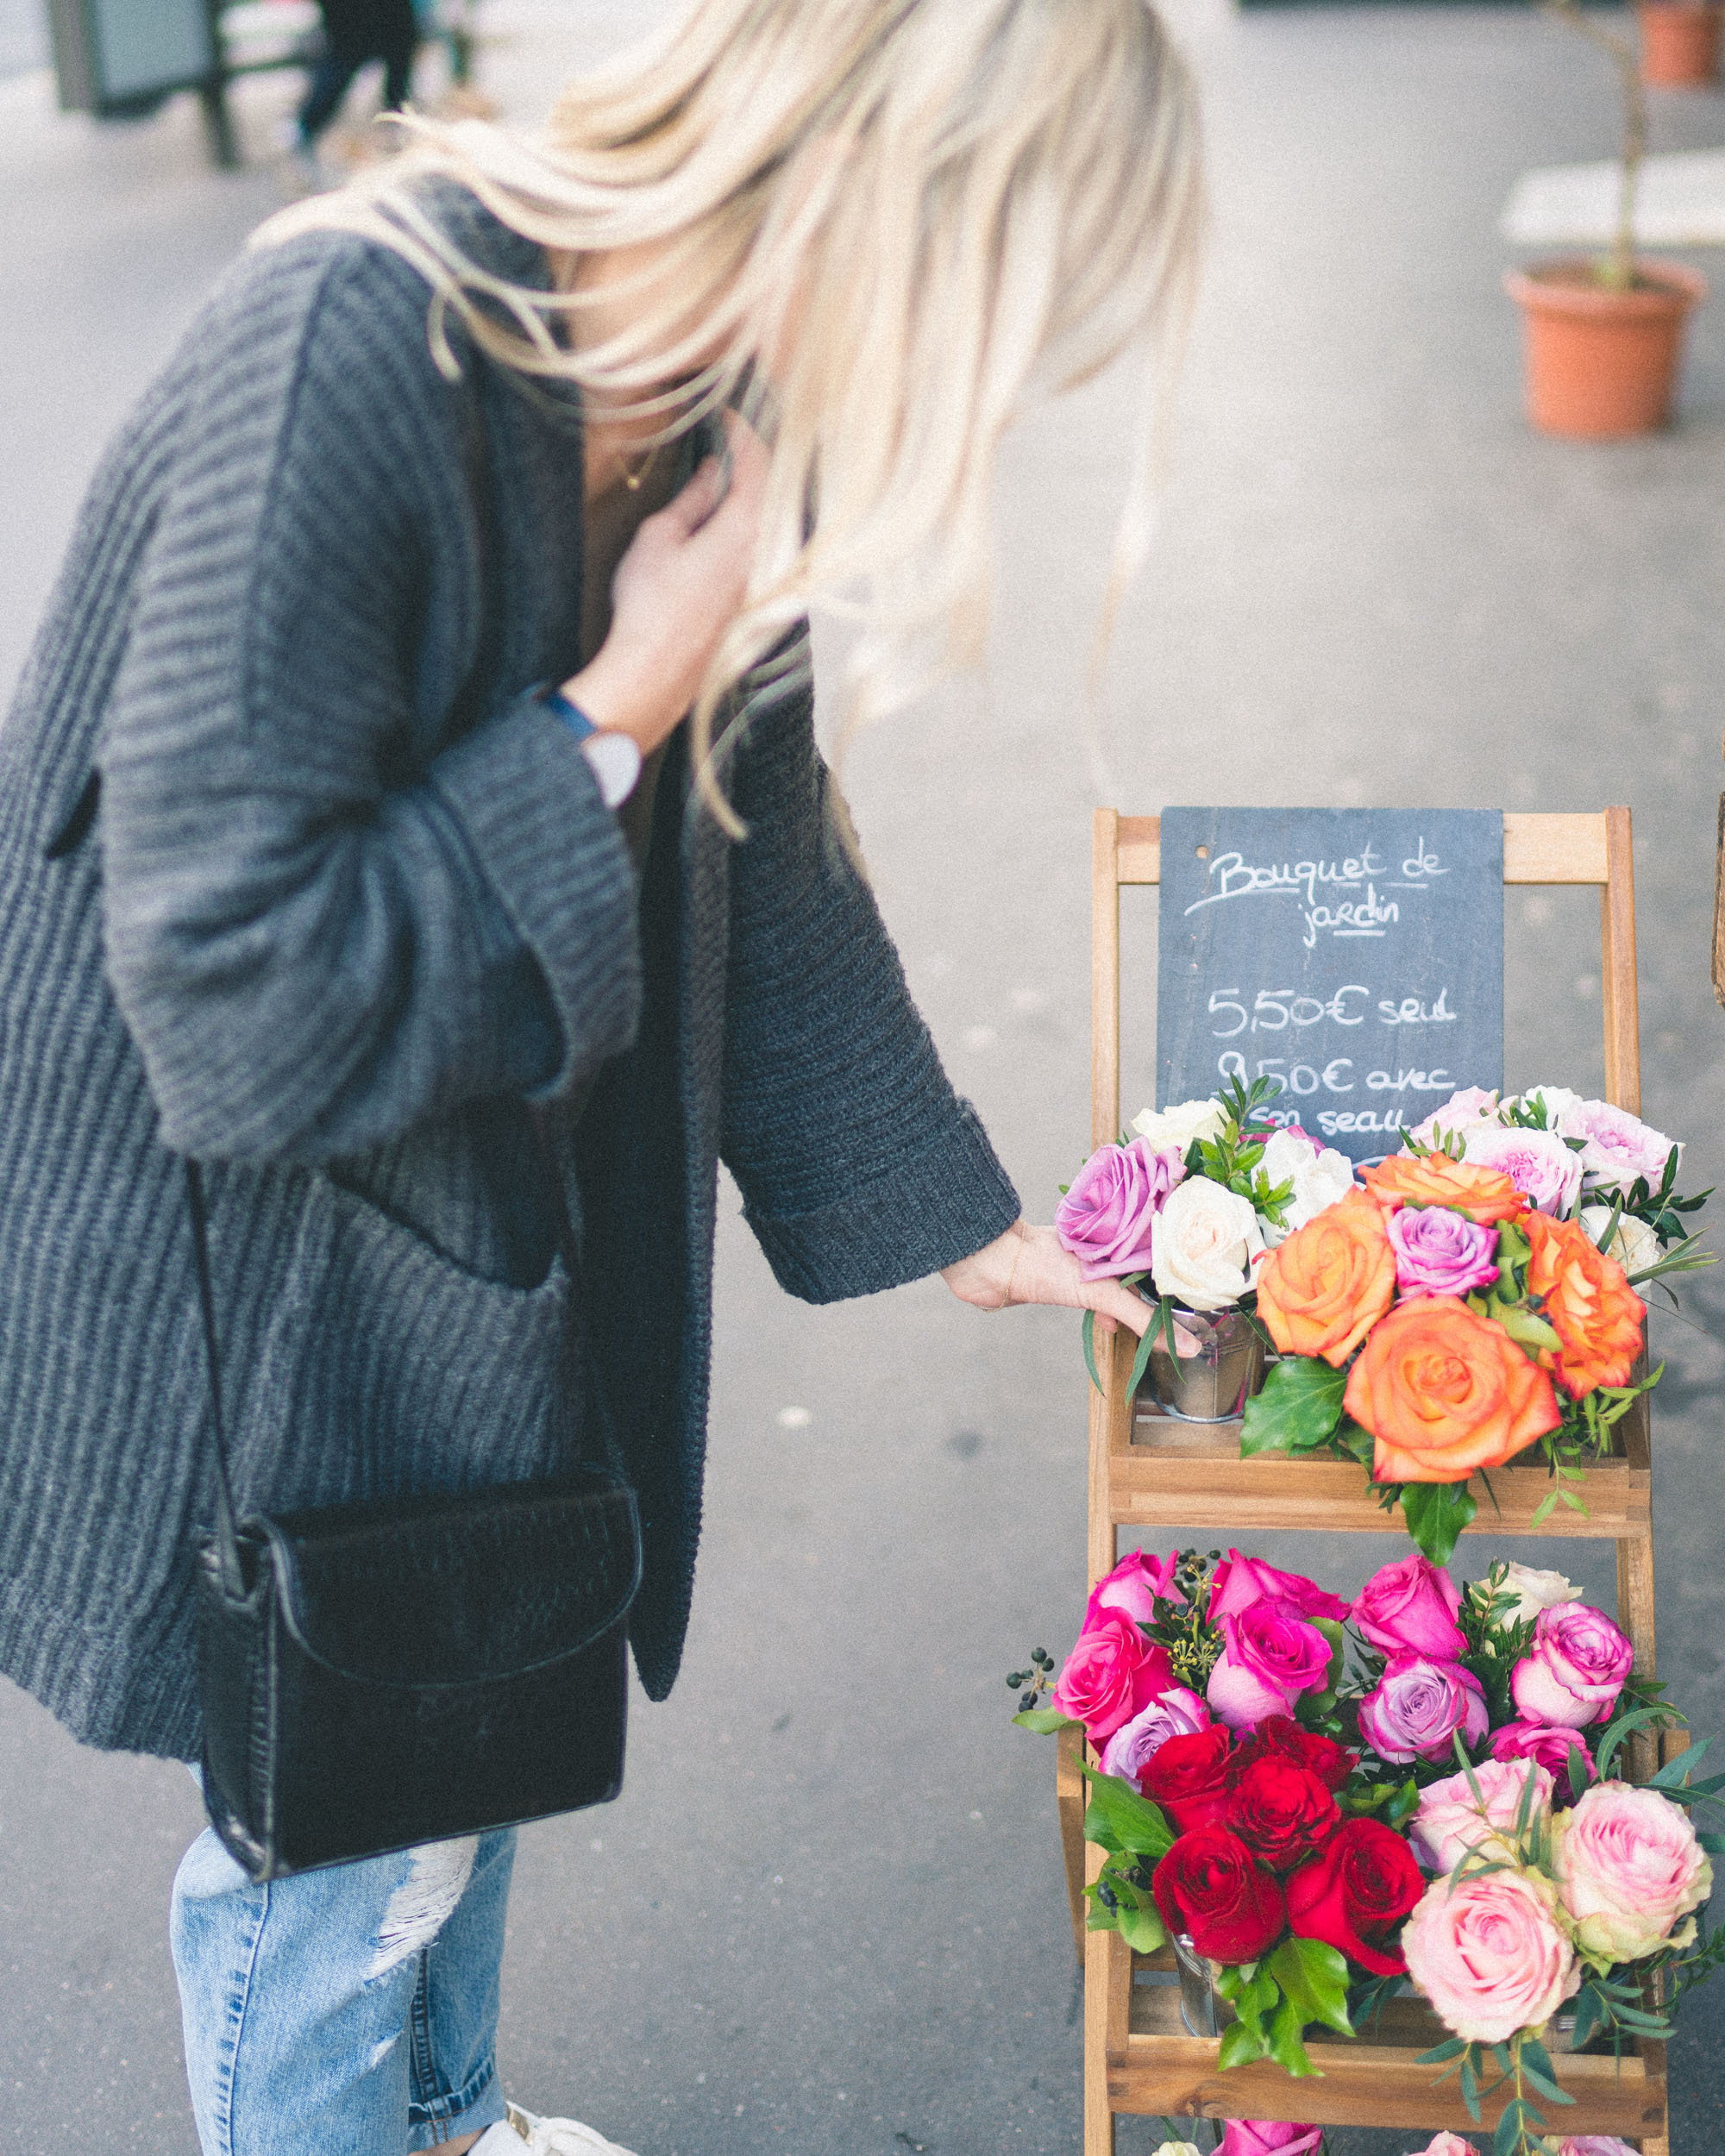 Shopping for flowers and roses in Paris - Complete Paris Travel Guide